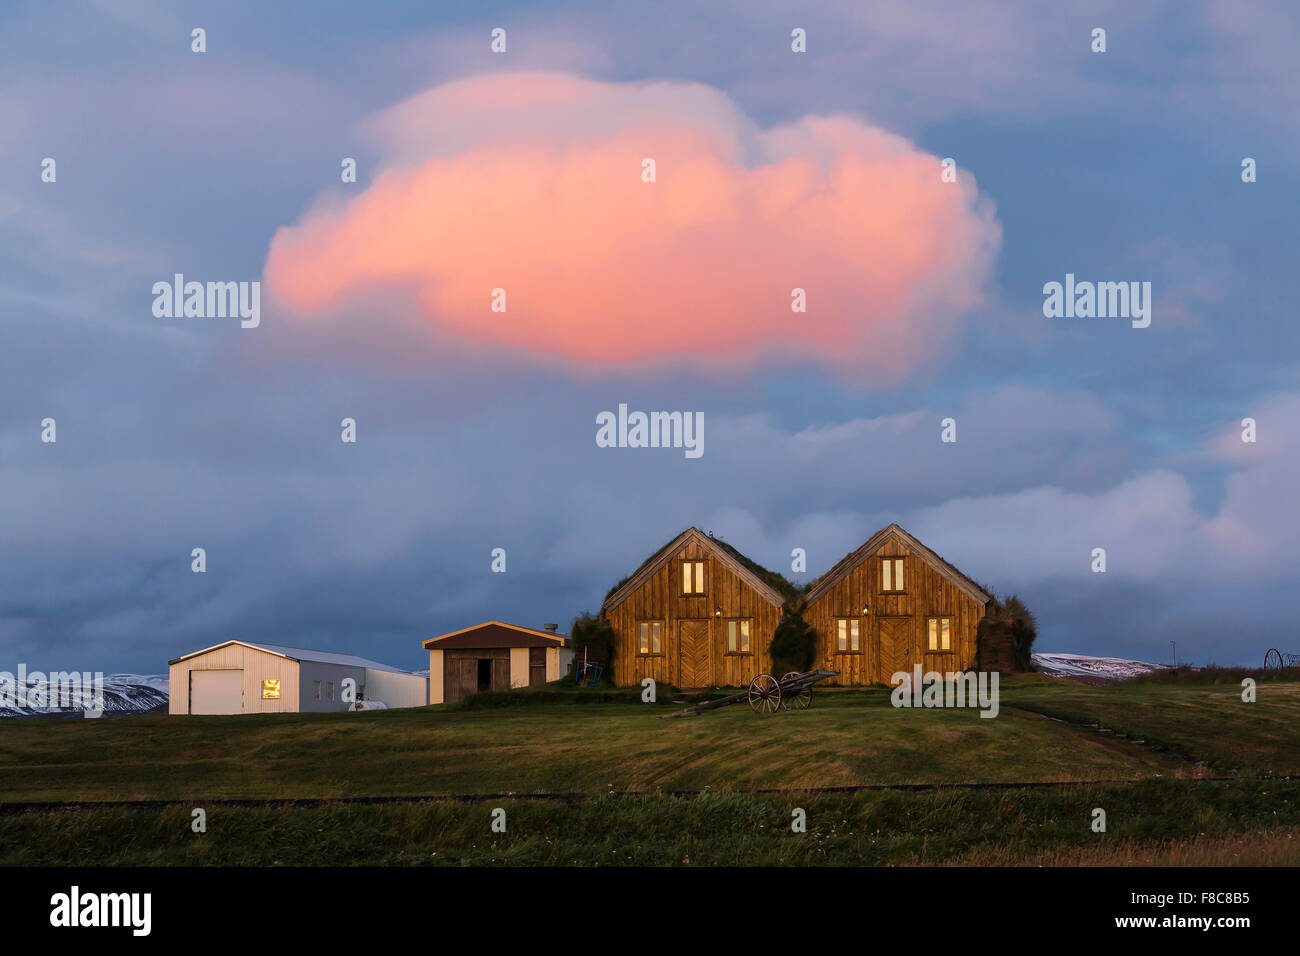 Turf covered houses at Modrudalur. Gorgeous red cloud over houses. North Iceland - Stock Image